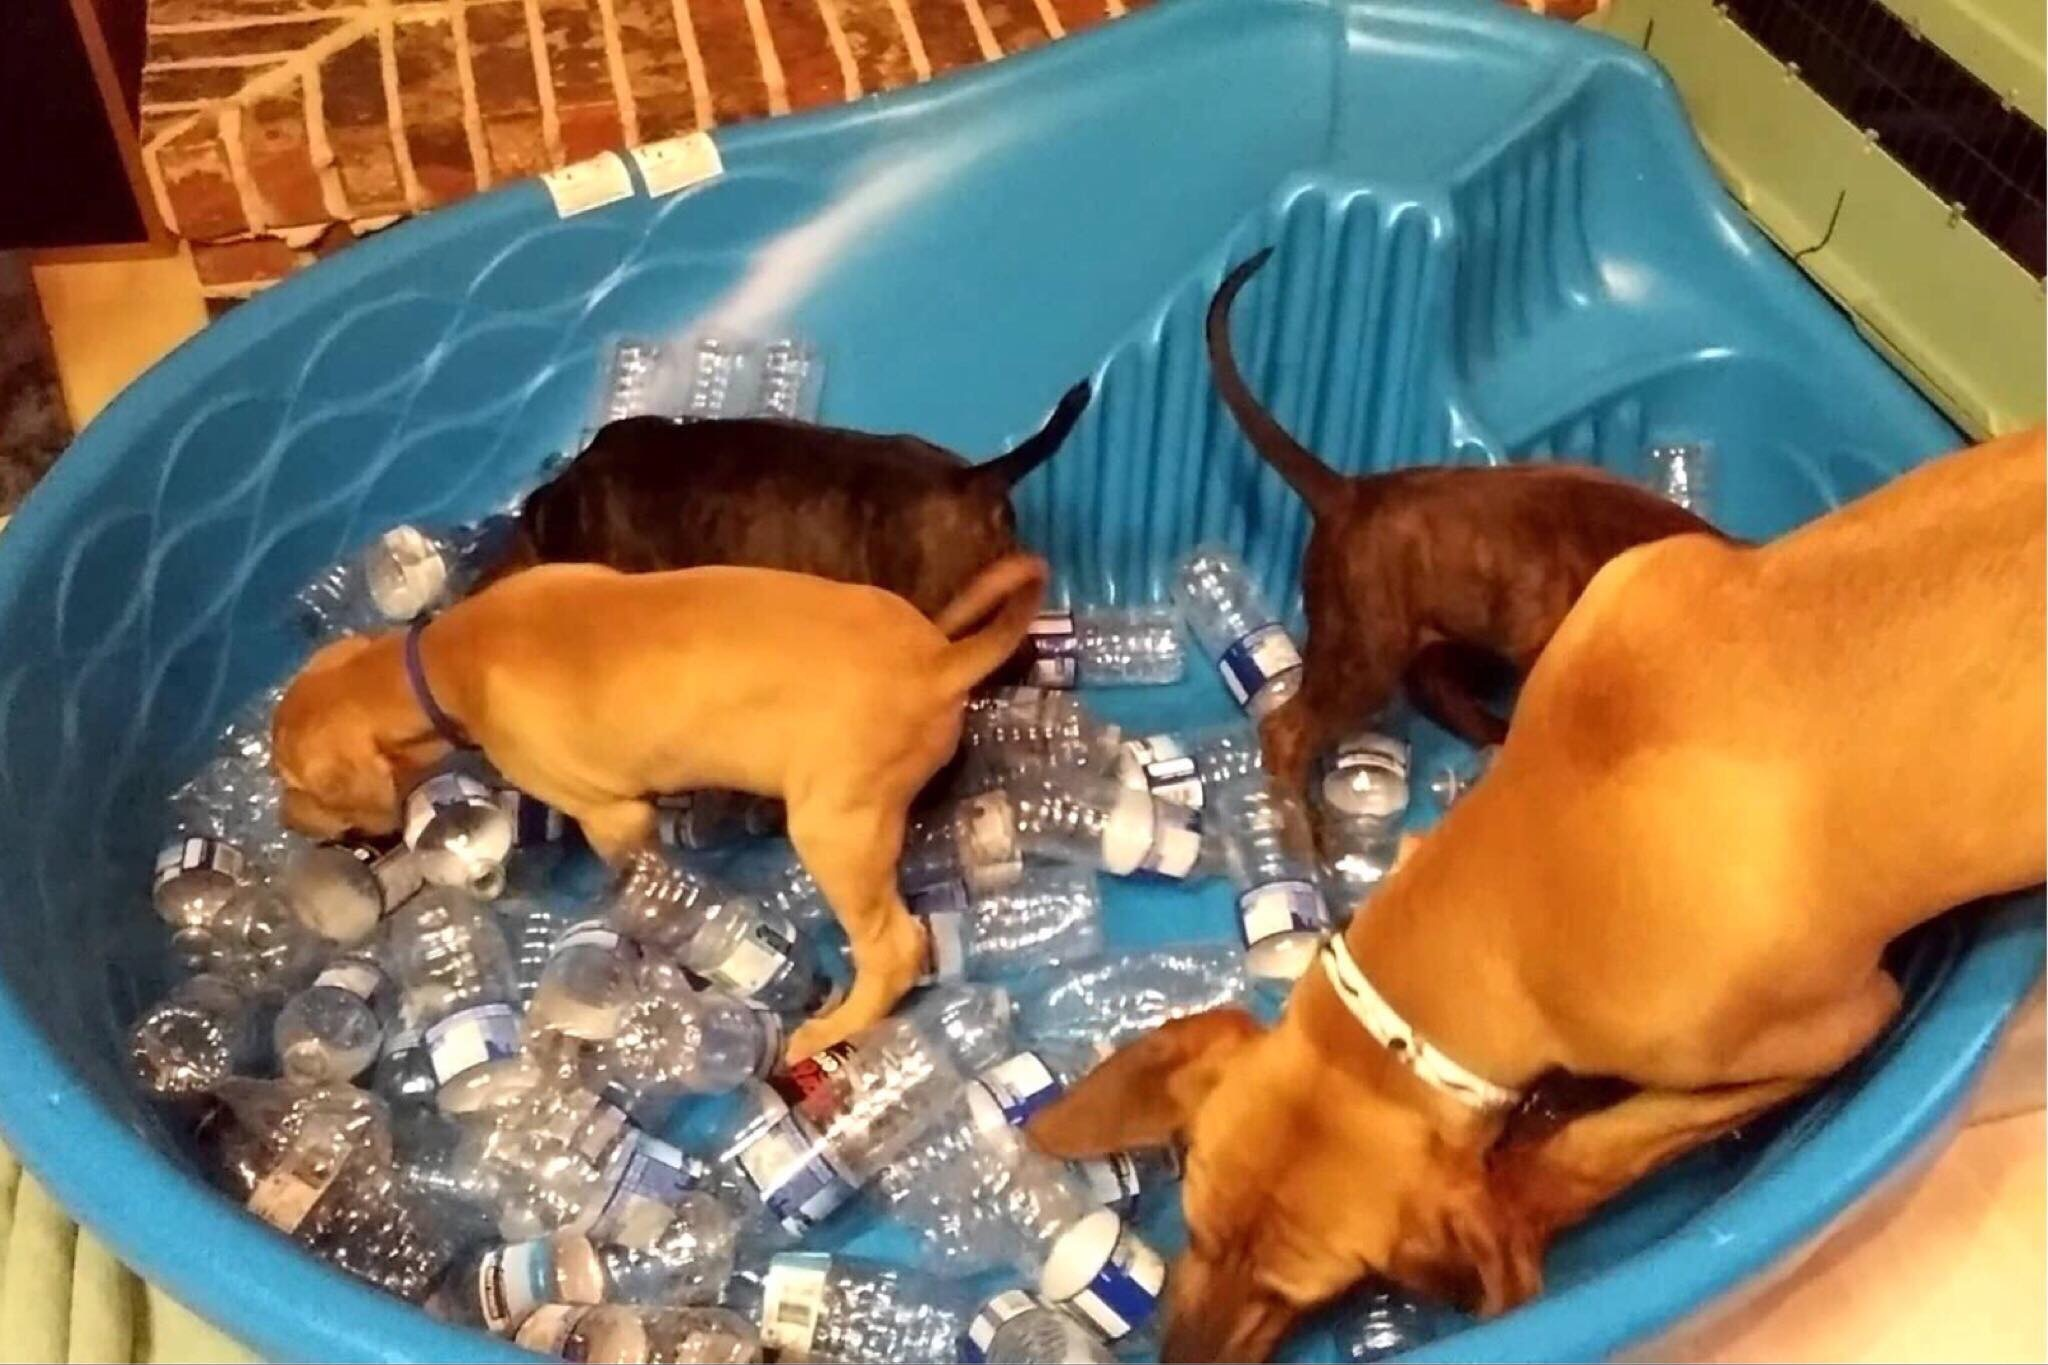 Baby Pool filled with Kibble and Bottles